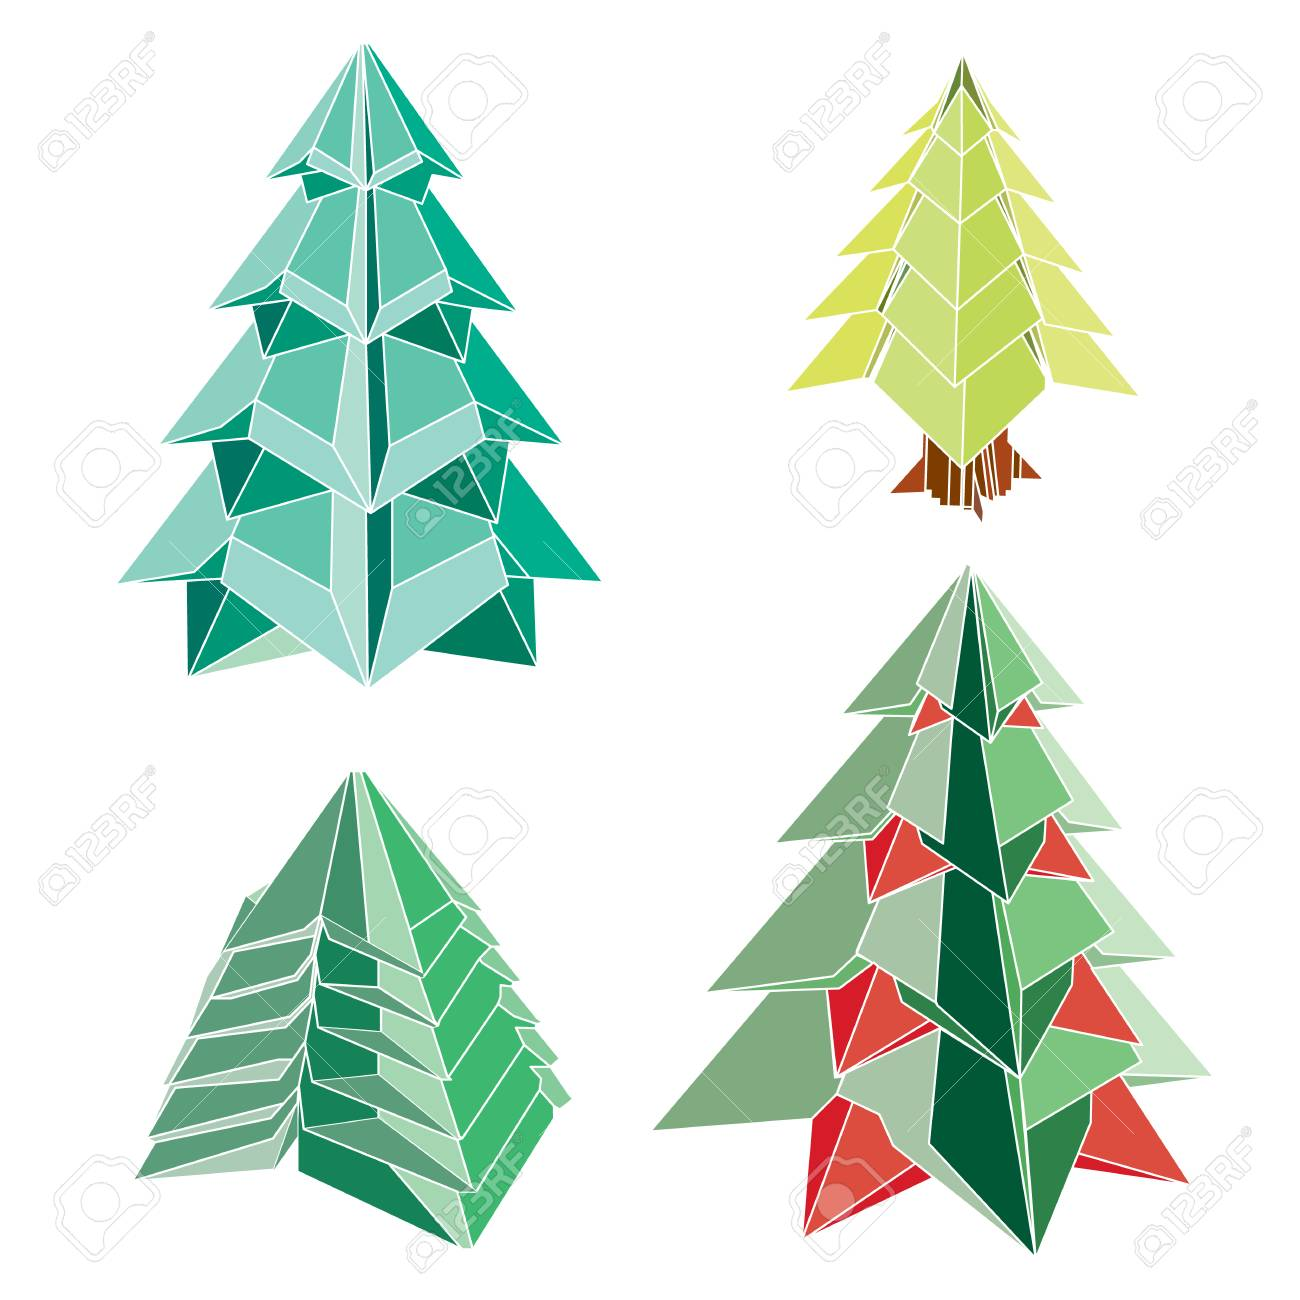 buy popular 32d32 0ce3b Christmas tree origami folding paper style vector on white background